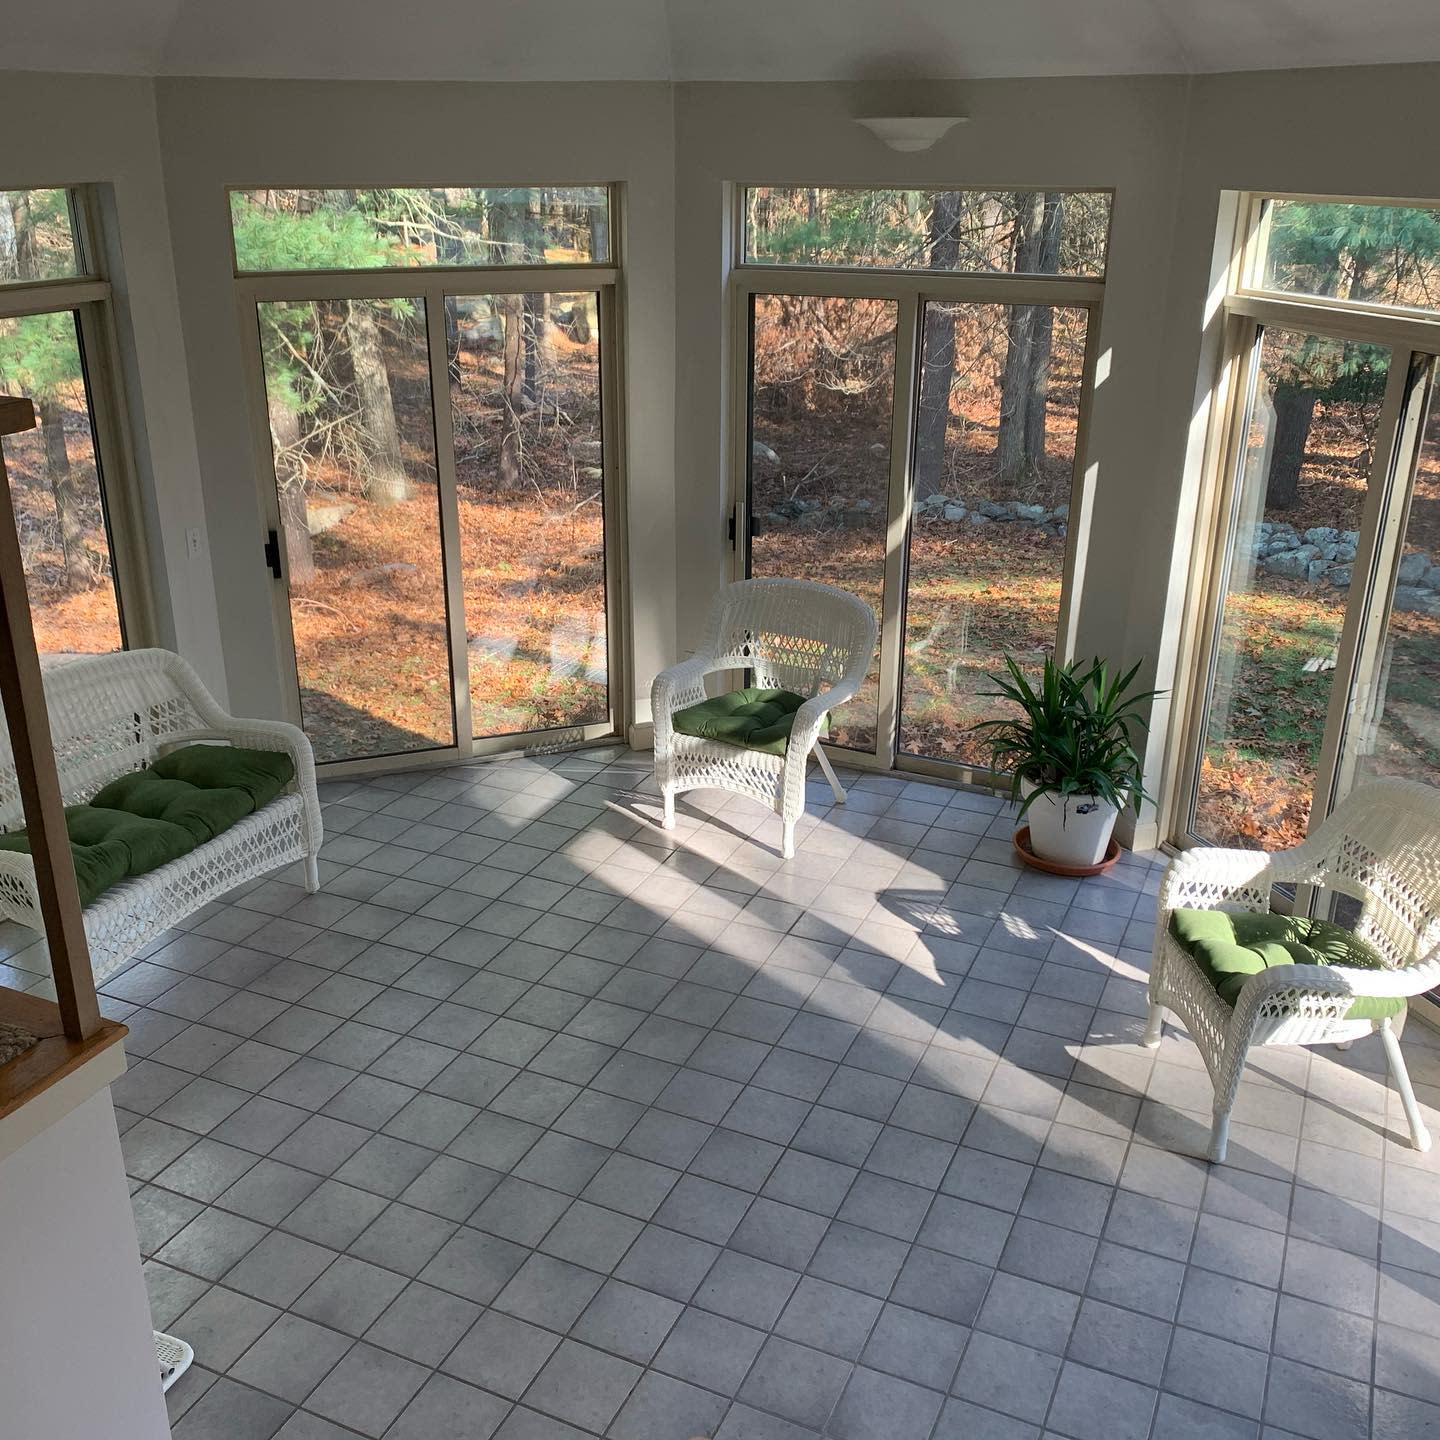 Sunroom Florida Room Ideas -the_unknown_asian_powerlifter